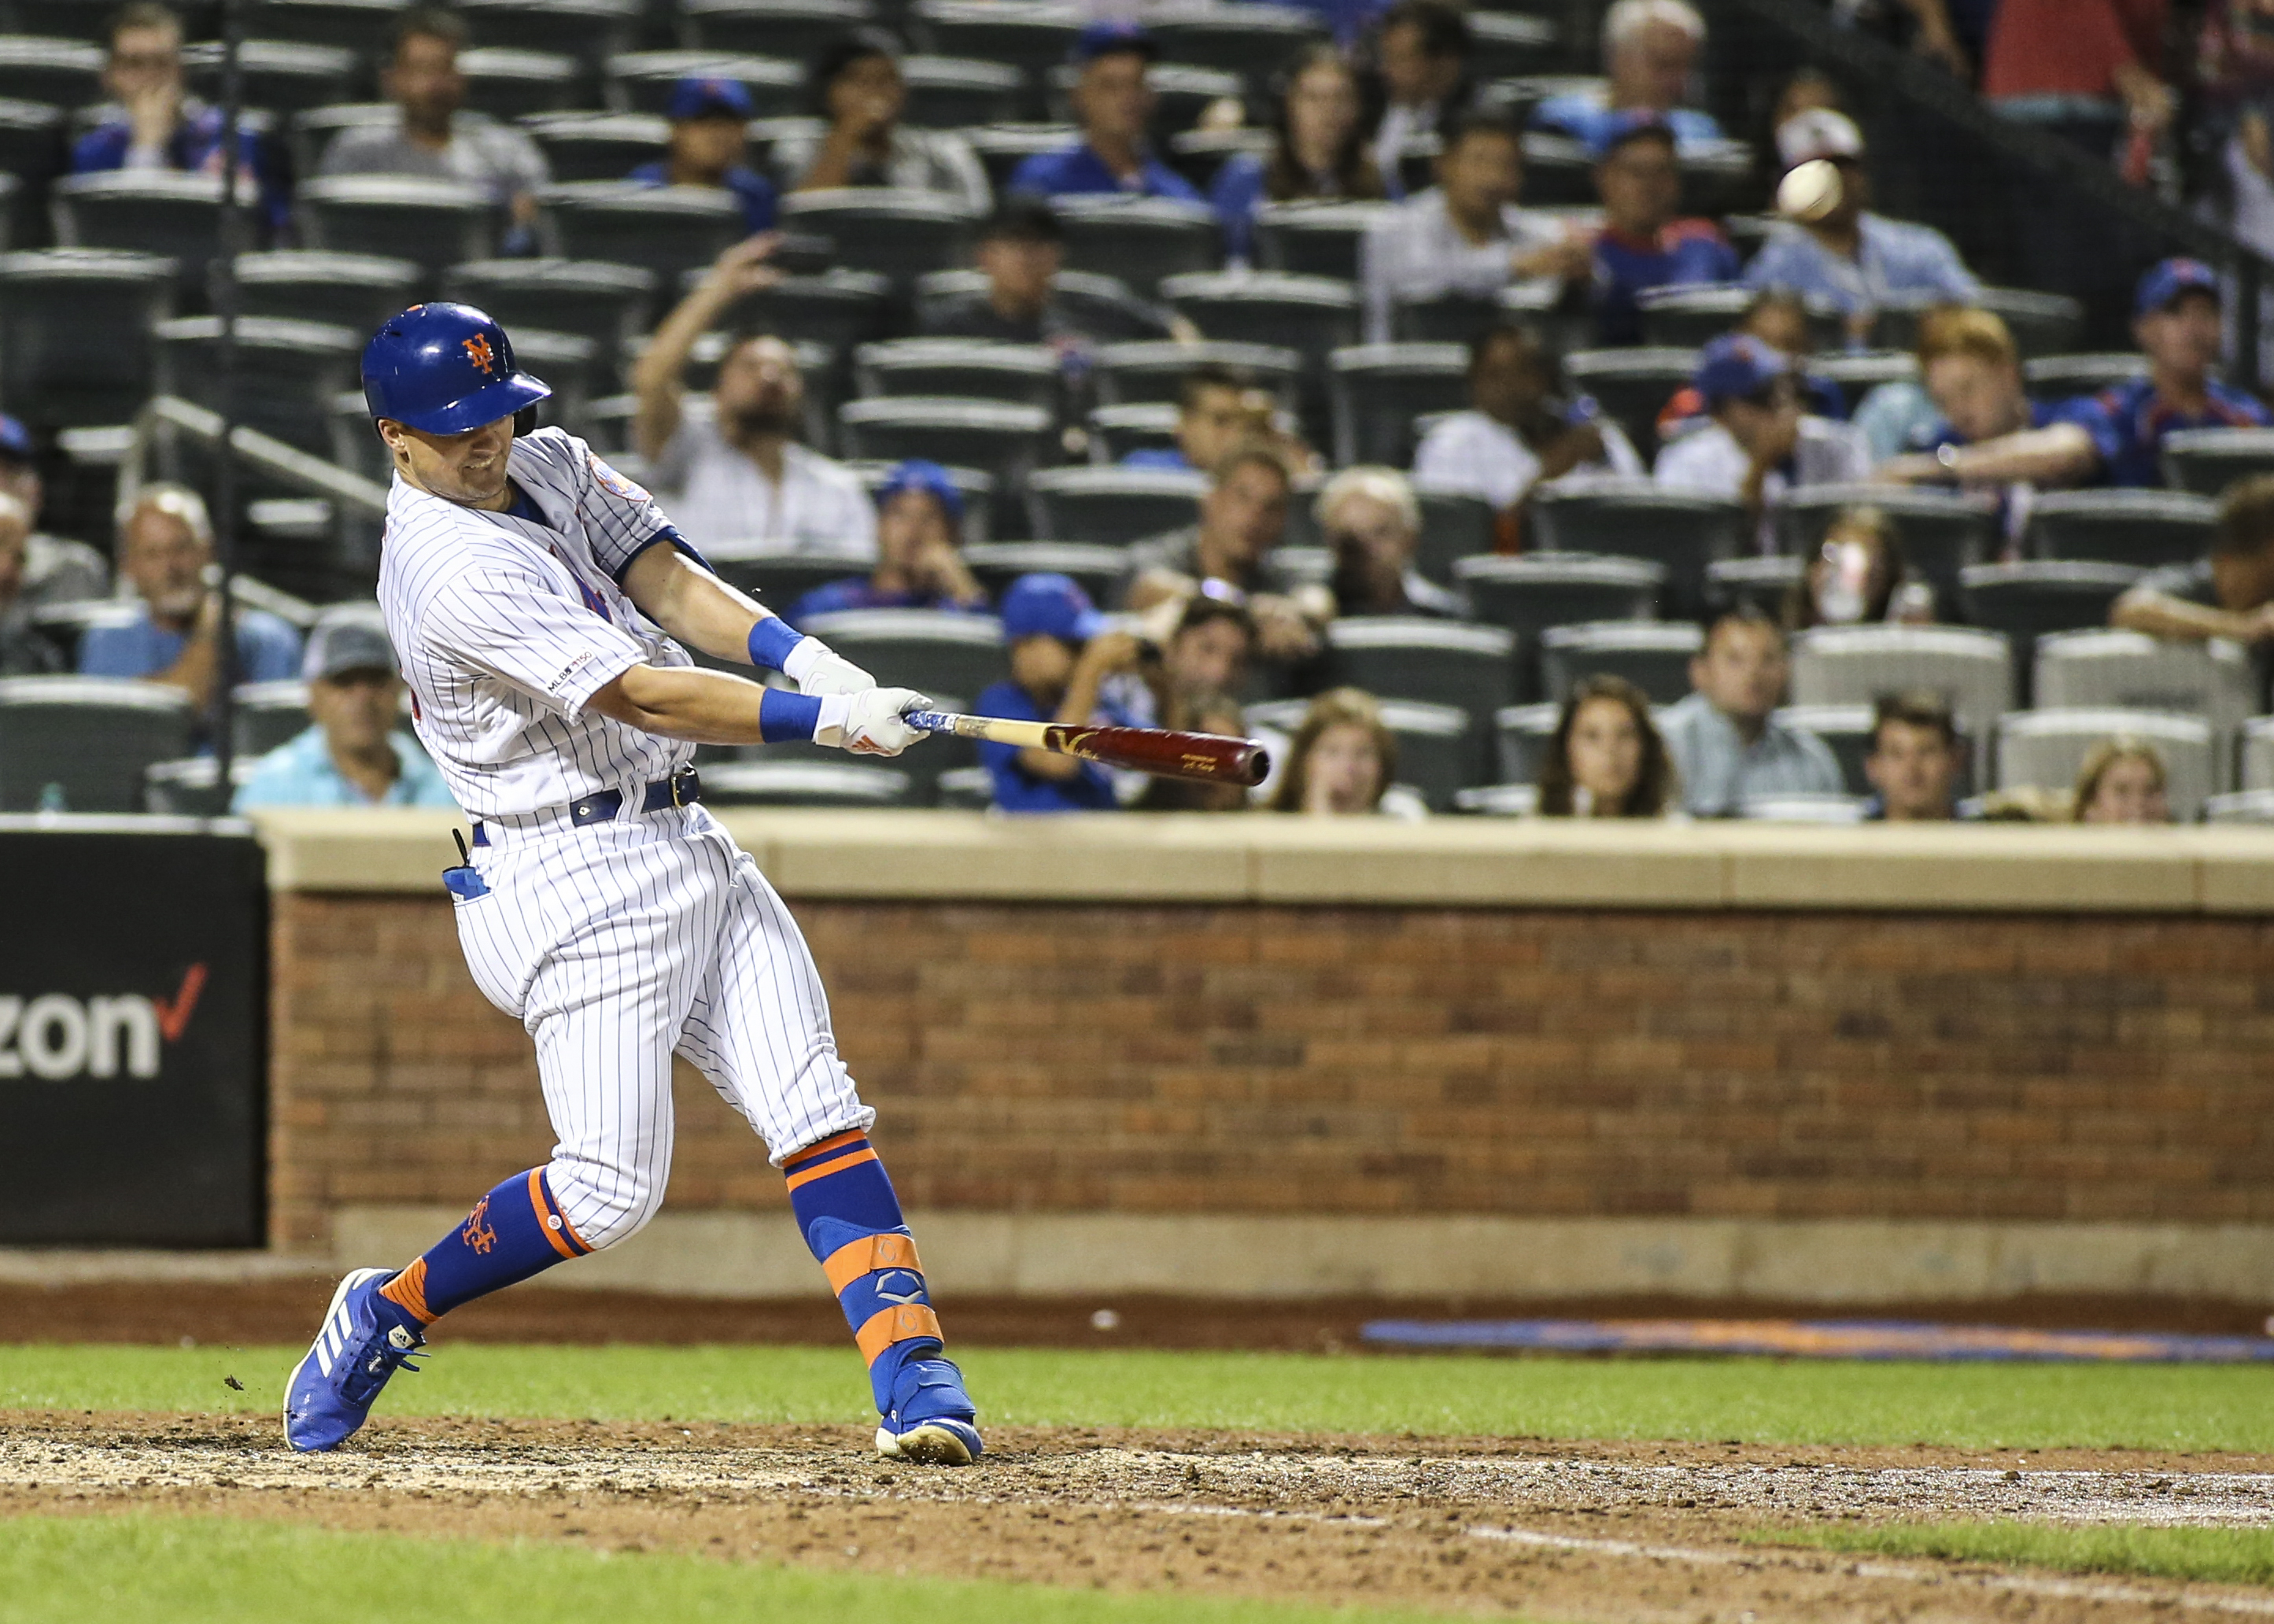 8/29/19 Game Preview: Chicago Cubs at New York Mets